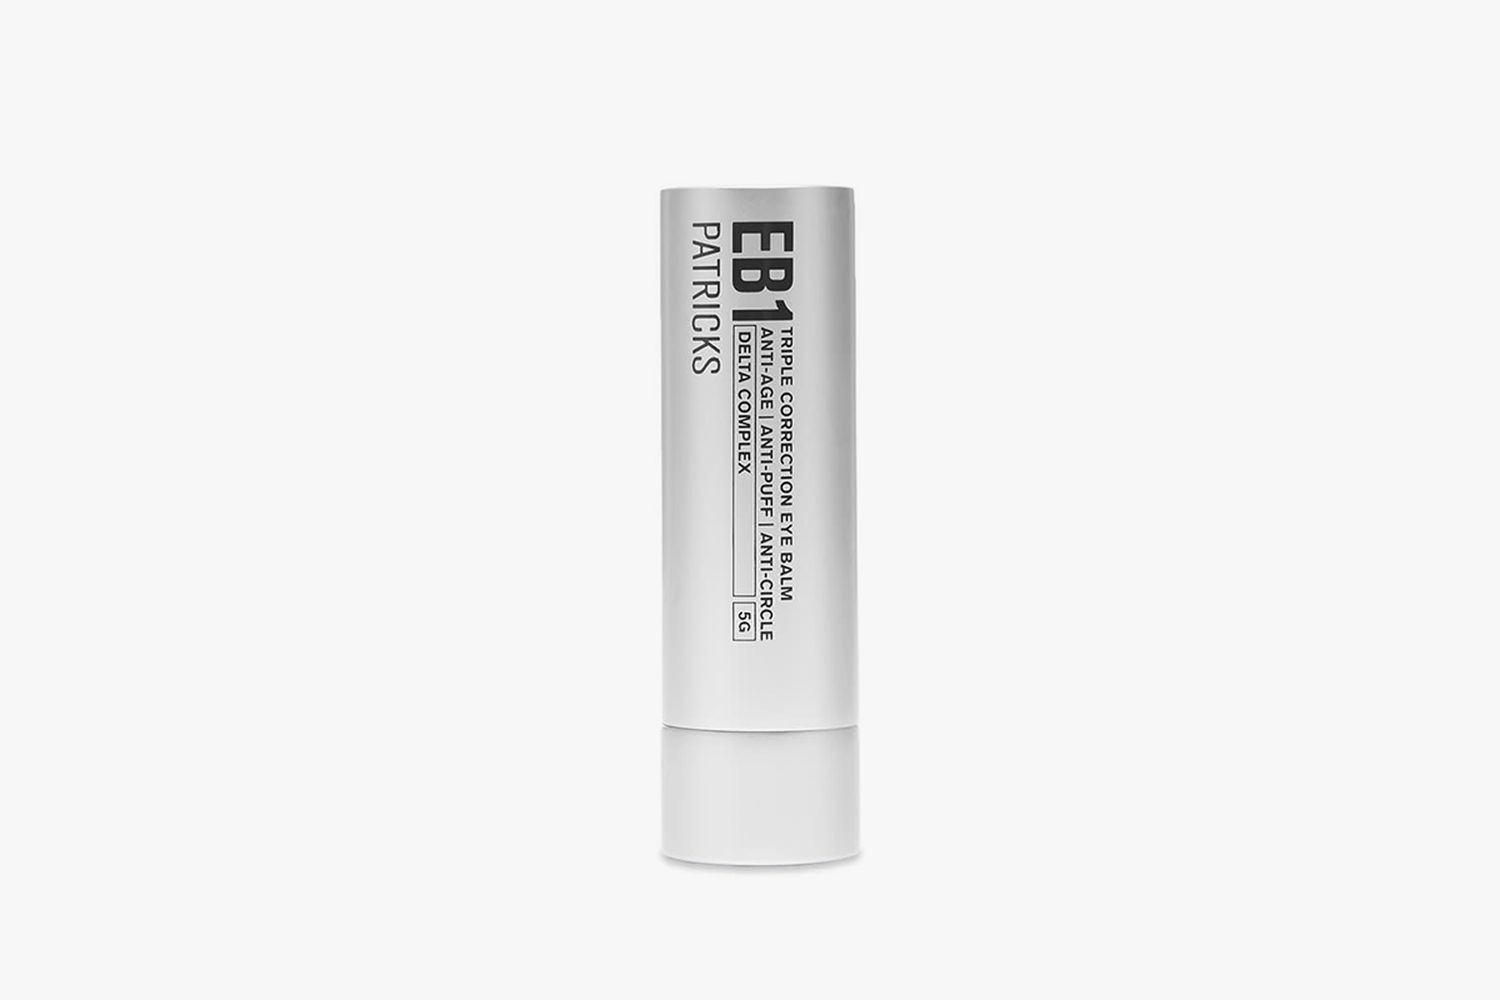 EB1 Triple Correction Eye Balm, 5g